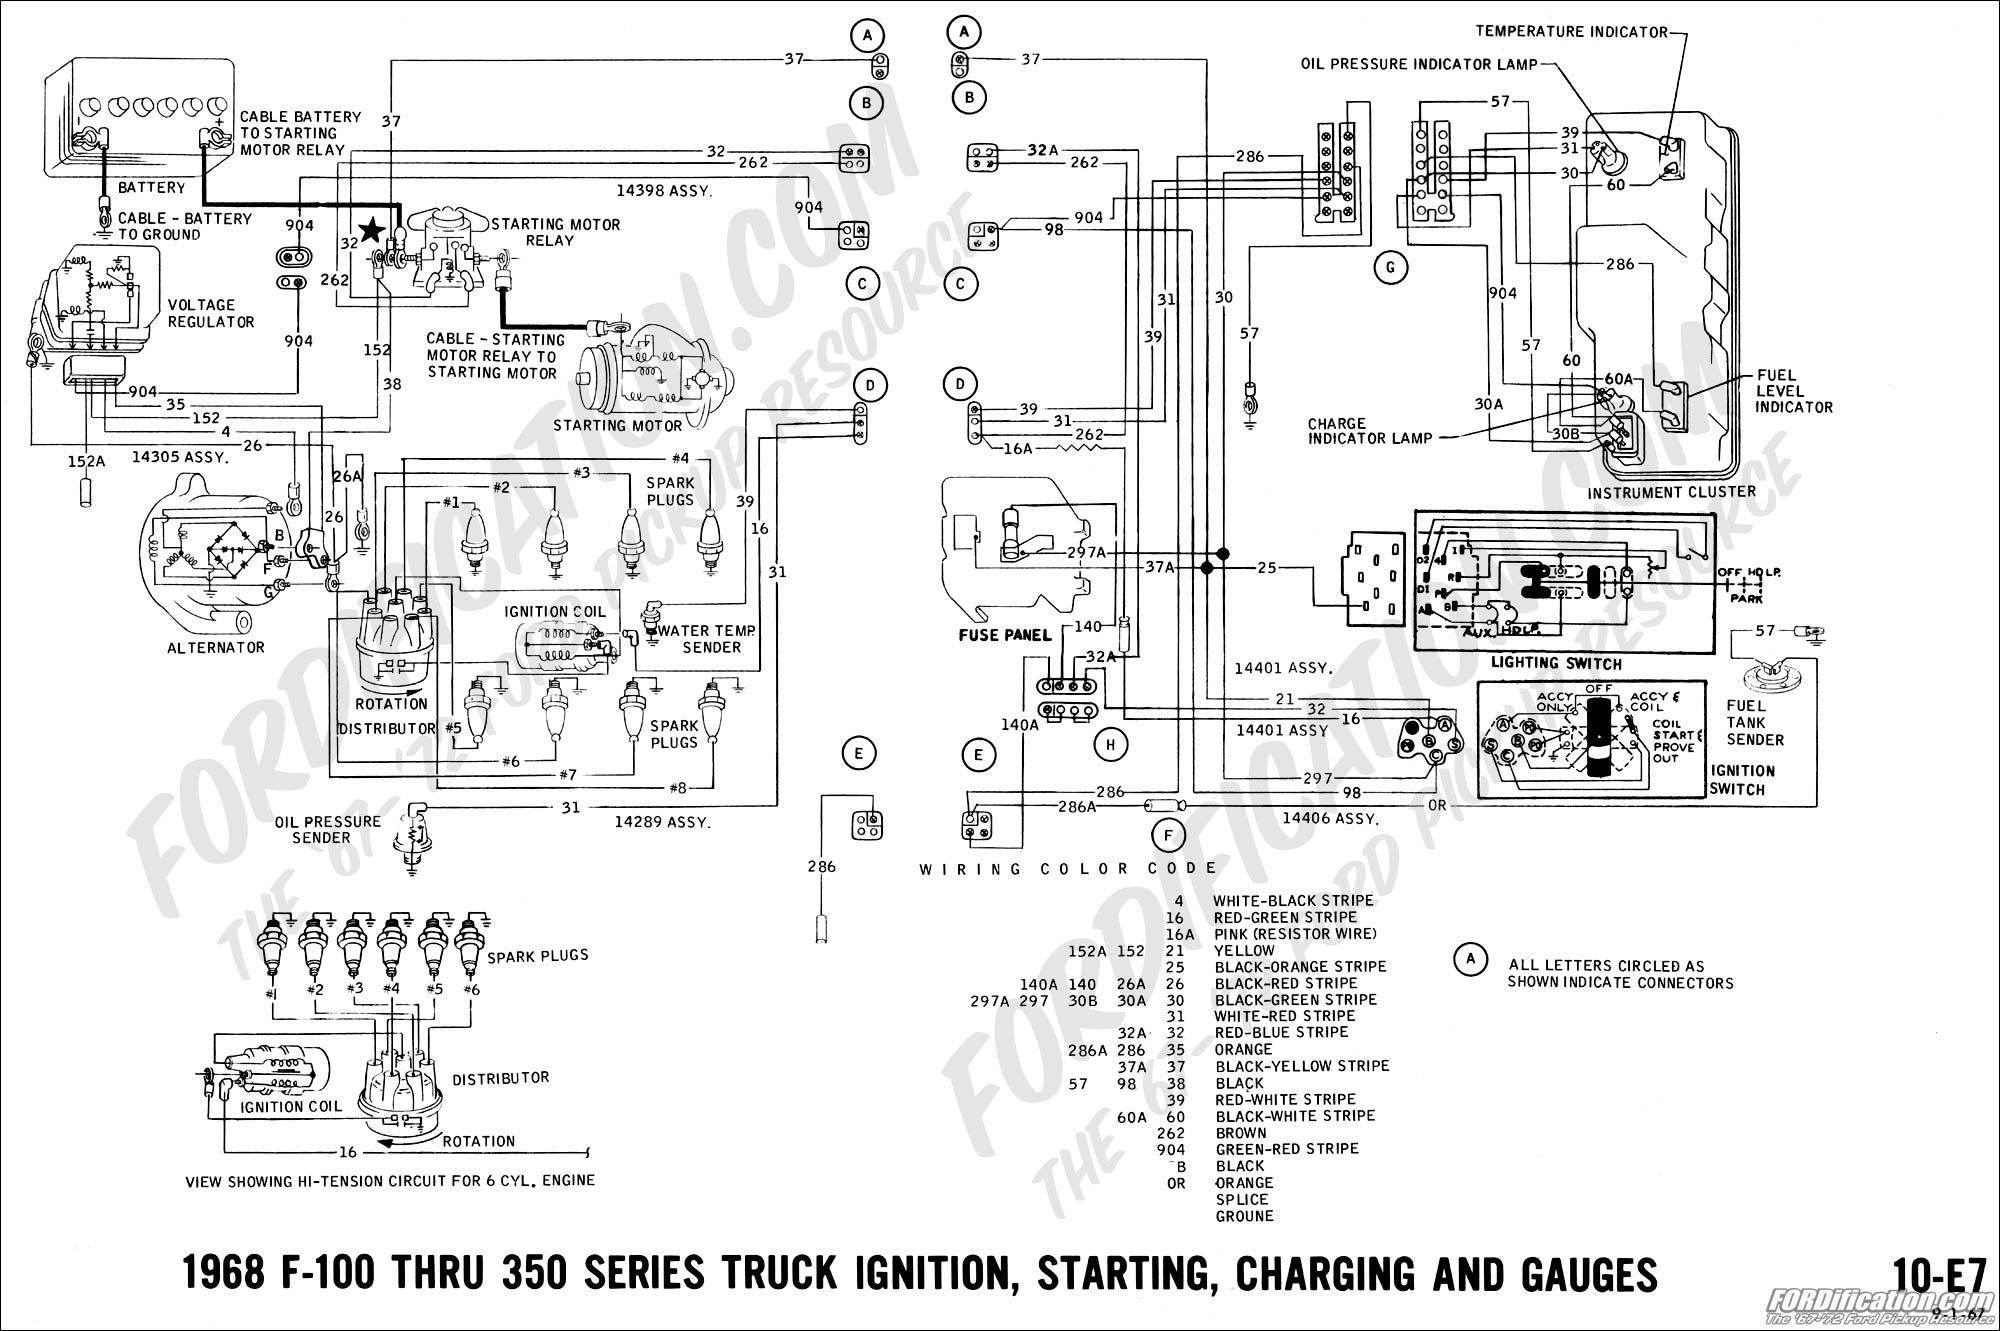 Ford Ignition System Wiring Diagram on 1974 ford ignition wiring diagram, 1989 ford f250 ignition wiring diagram, ford wiring harness diagrams, ford falcon wiring-diagram, msd ignition wiring diagram, 1994 ford bronco ignition wiring diagram, ford 302 ignition wiring diagram, ford ignition module schematic, ford ranger 2.9 wiring-diagram, ford ignition wiring diagram fuel, 1968 ford f100 ignition wiring diagram, ignition coil wiring diagram, ford cop ignition wiring diagrams, basic ignition system diagram, ford tractor ignition switch wiring, 1980 ford ignition wiring diagram, ford ignition solenoid, 1976 ford ignition wiring diagram, 1979 ford ignition wiring diagram, ford electrical wiring diagrams,